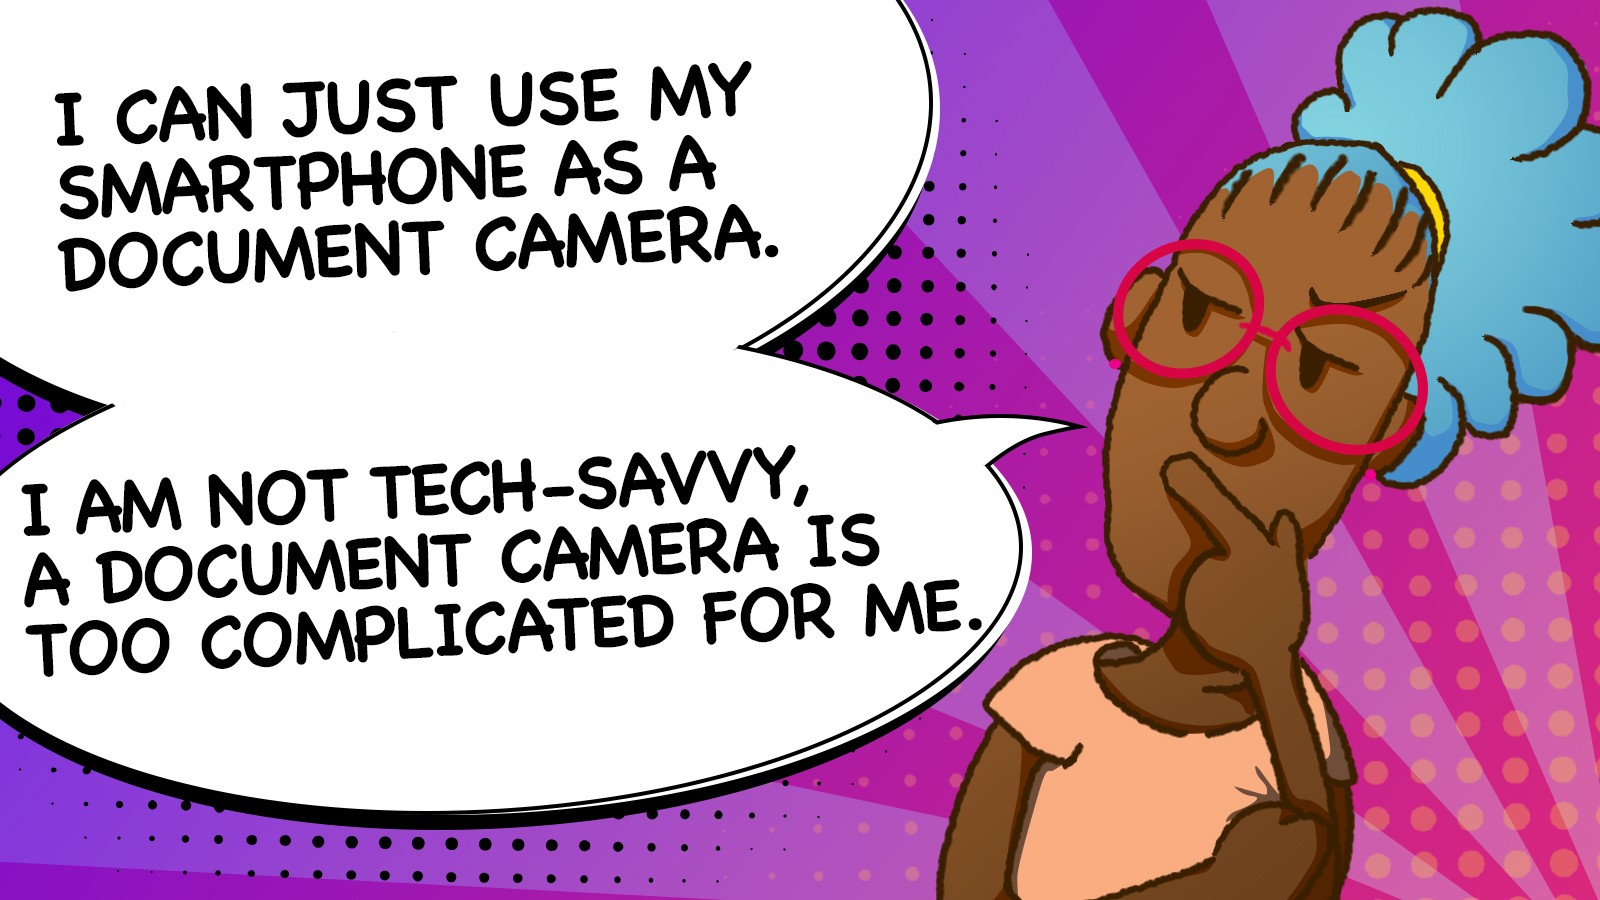 I CAN JUST USE MY SMARTPHONE AS A DOCUMENT CAMERA. I AM NOT TECH-SAVVY, A DOCUMENT CAMERA IS TOO COMPLICATED FOR ME.